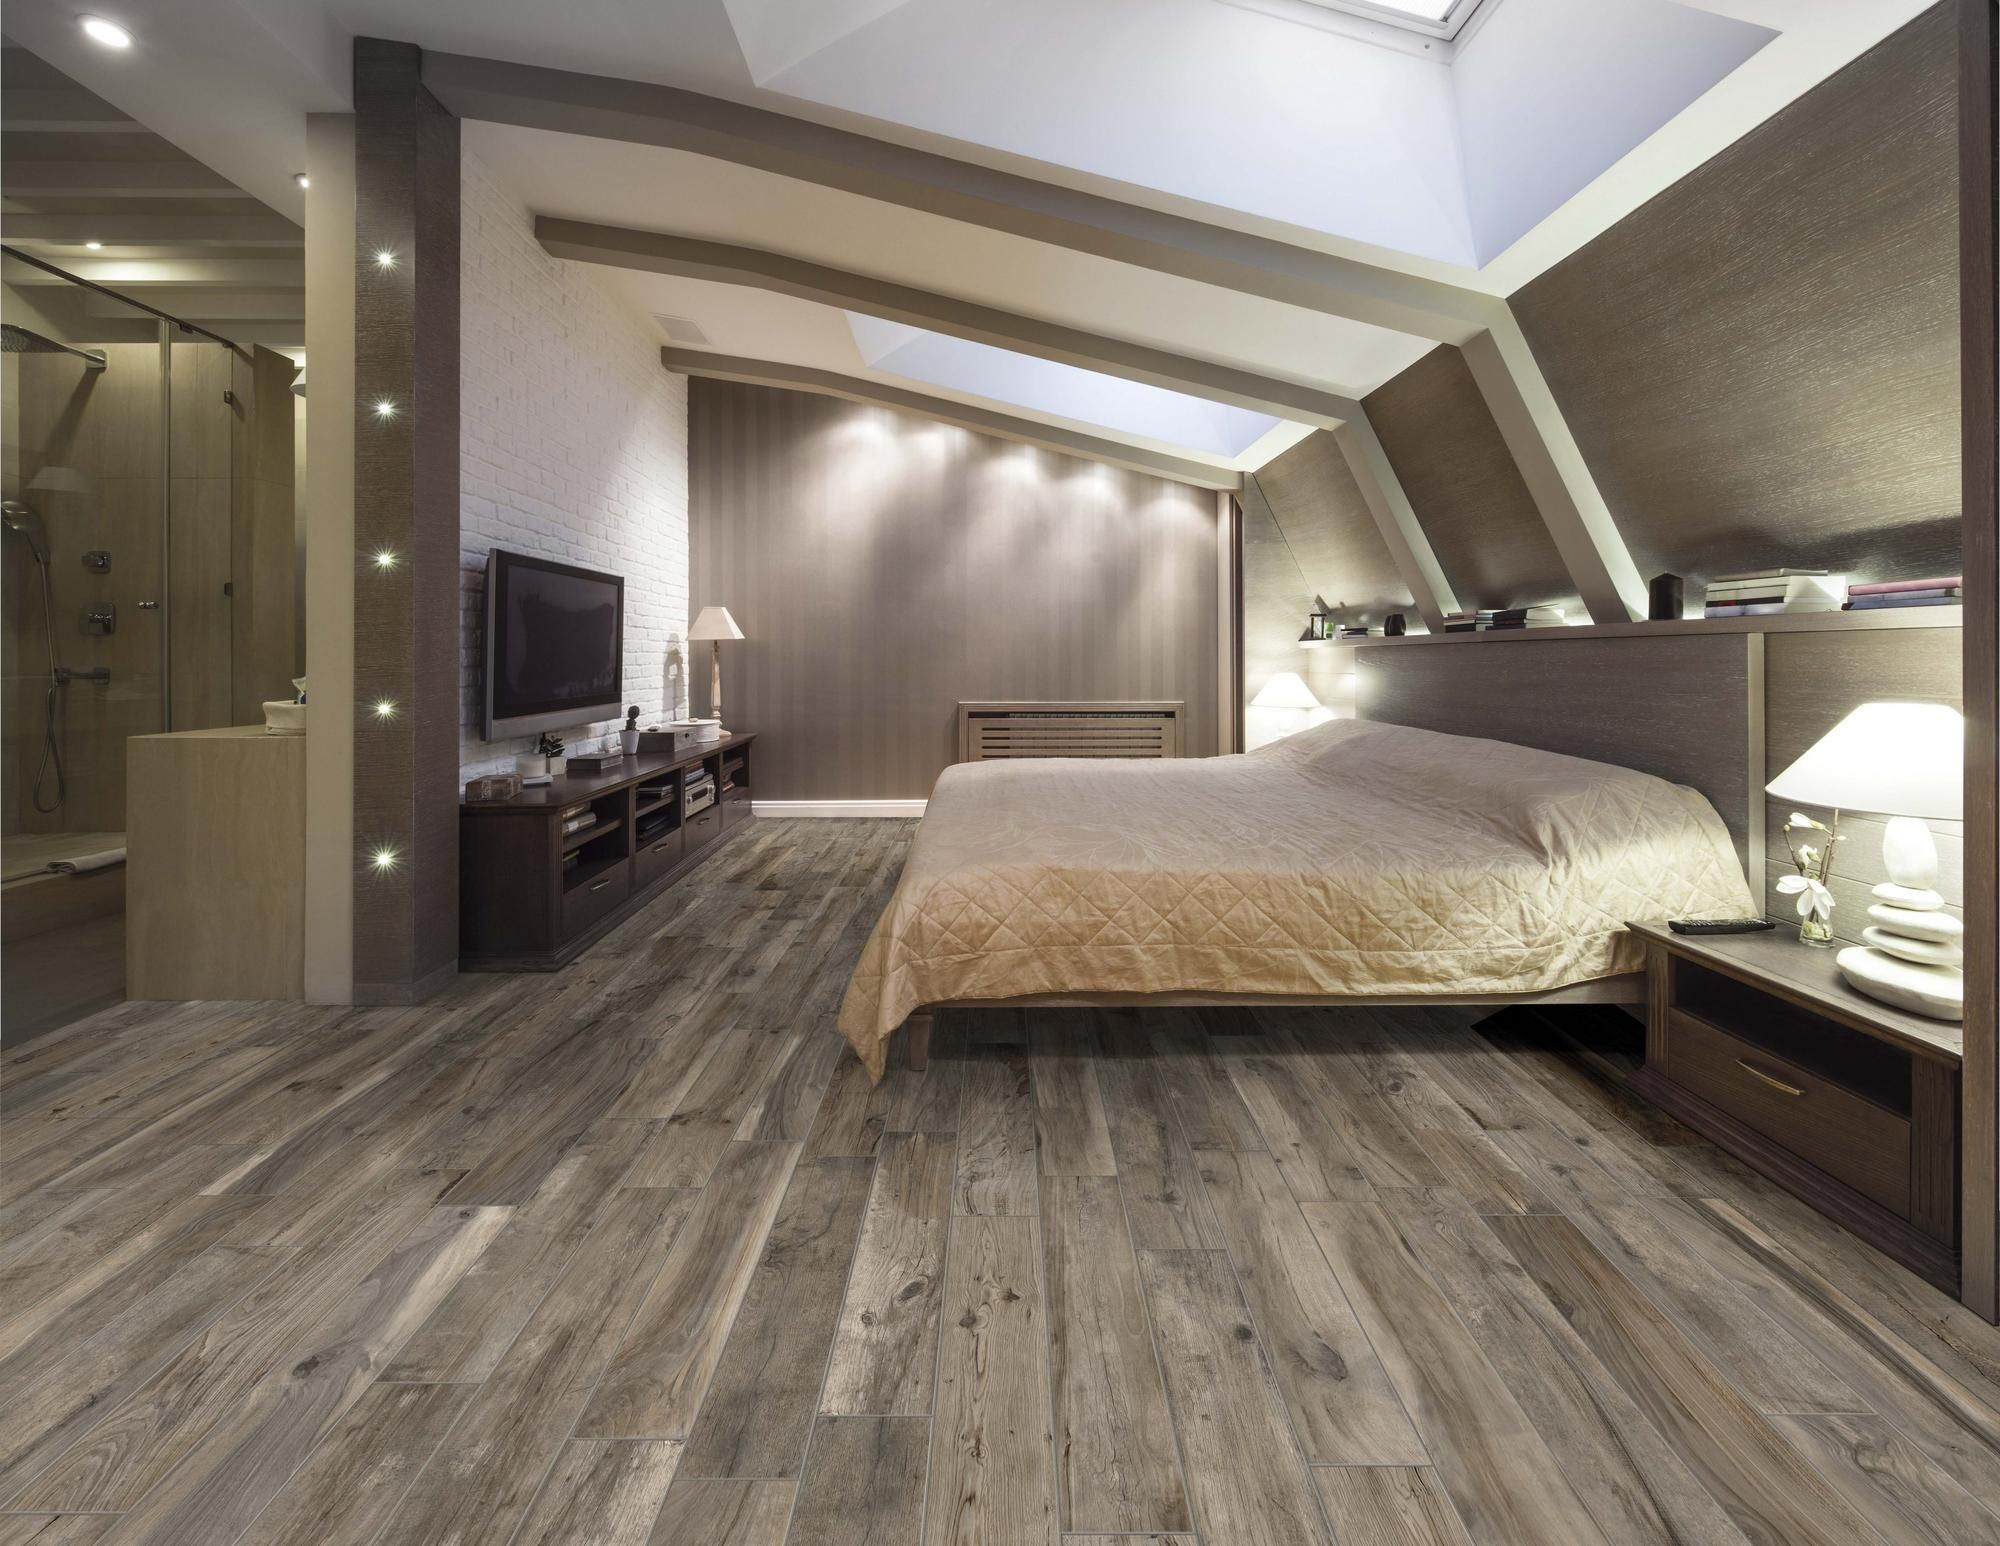 Soft Ash Wood Plank Porcelain Tile Remodel Bedroom Attic Master Bedroom Tile Bedroom